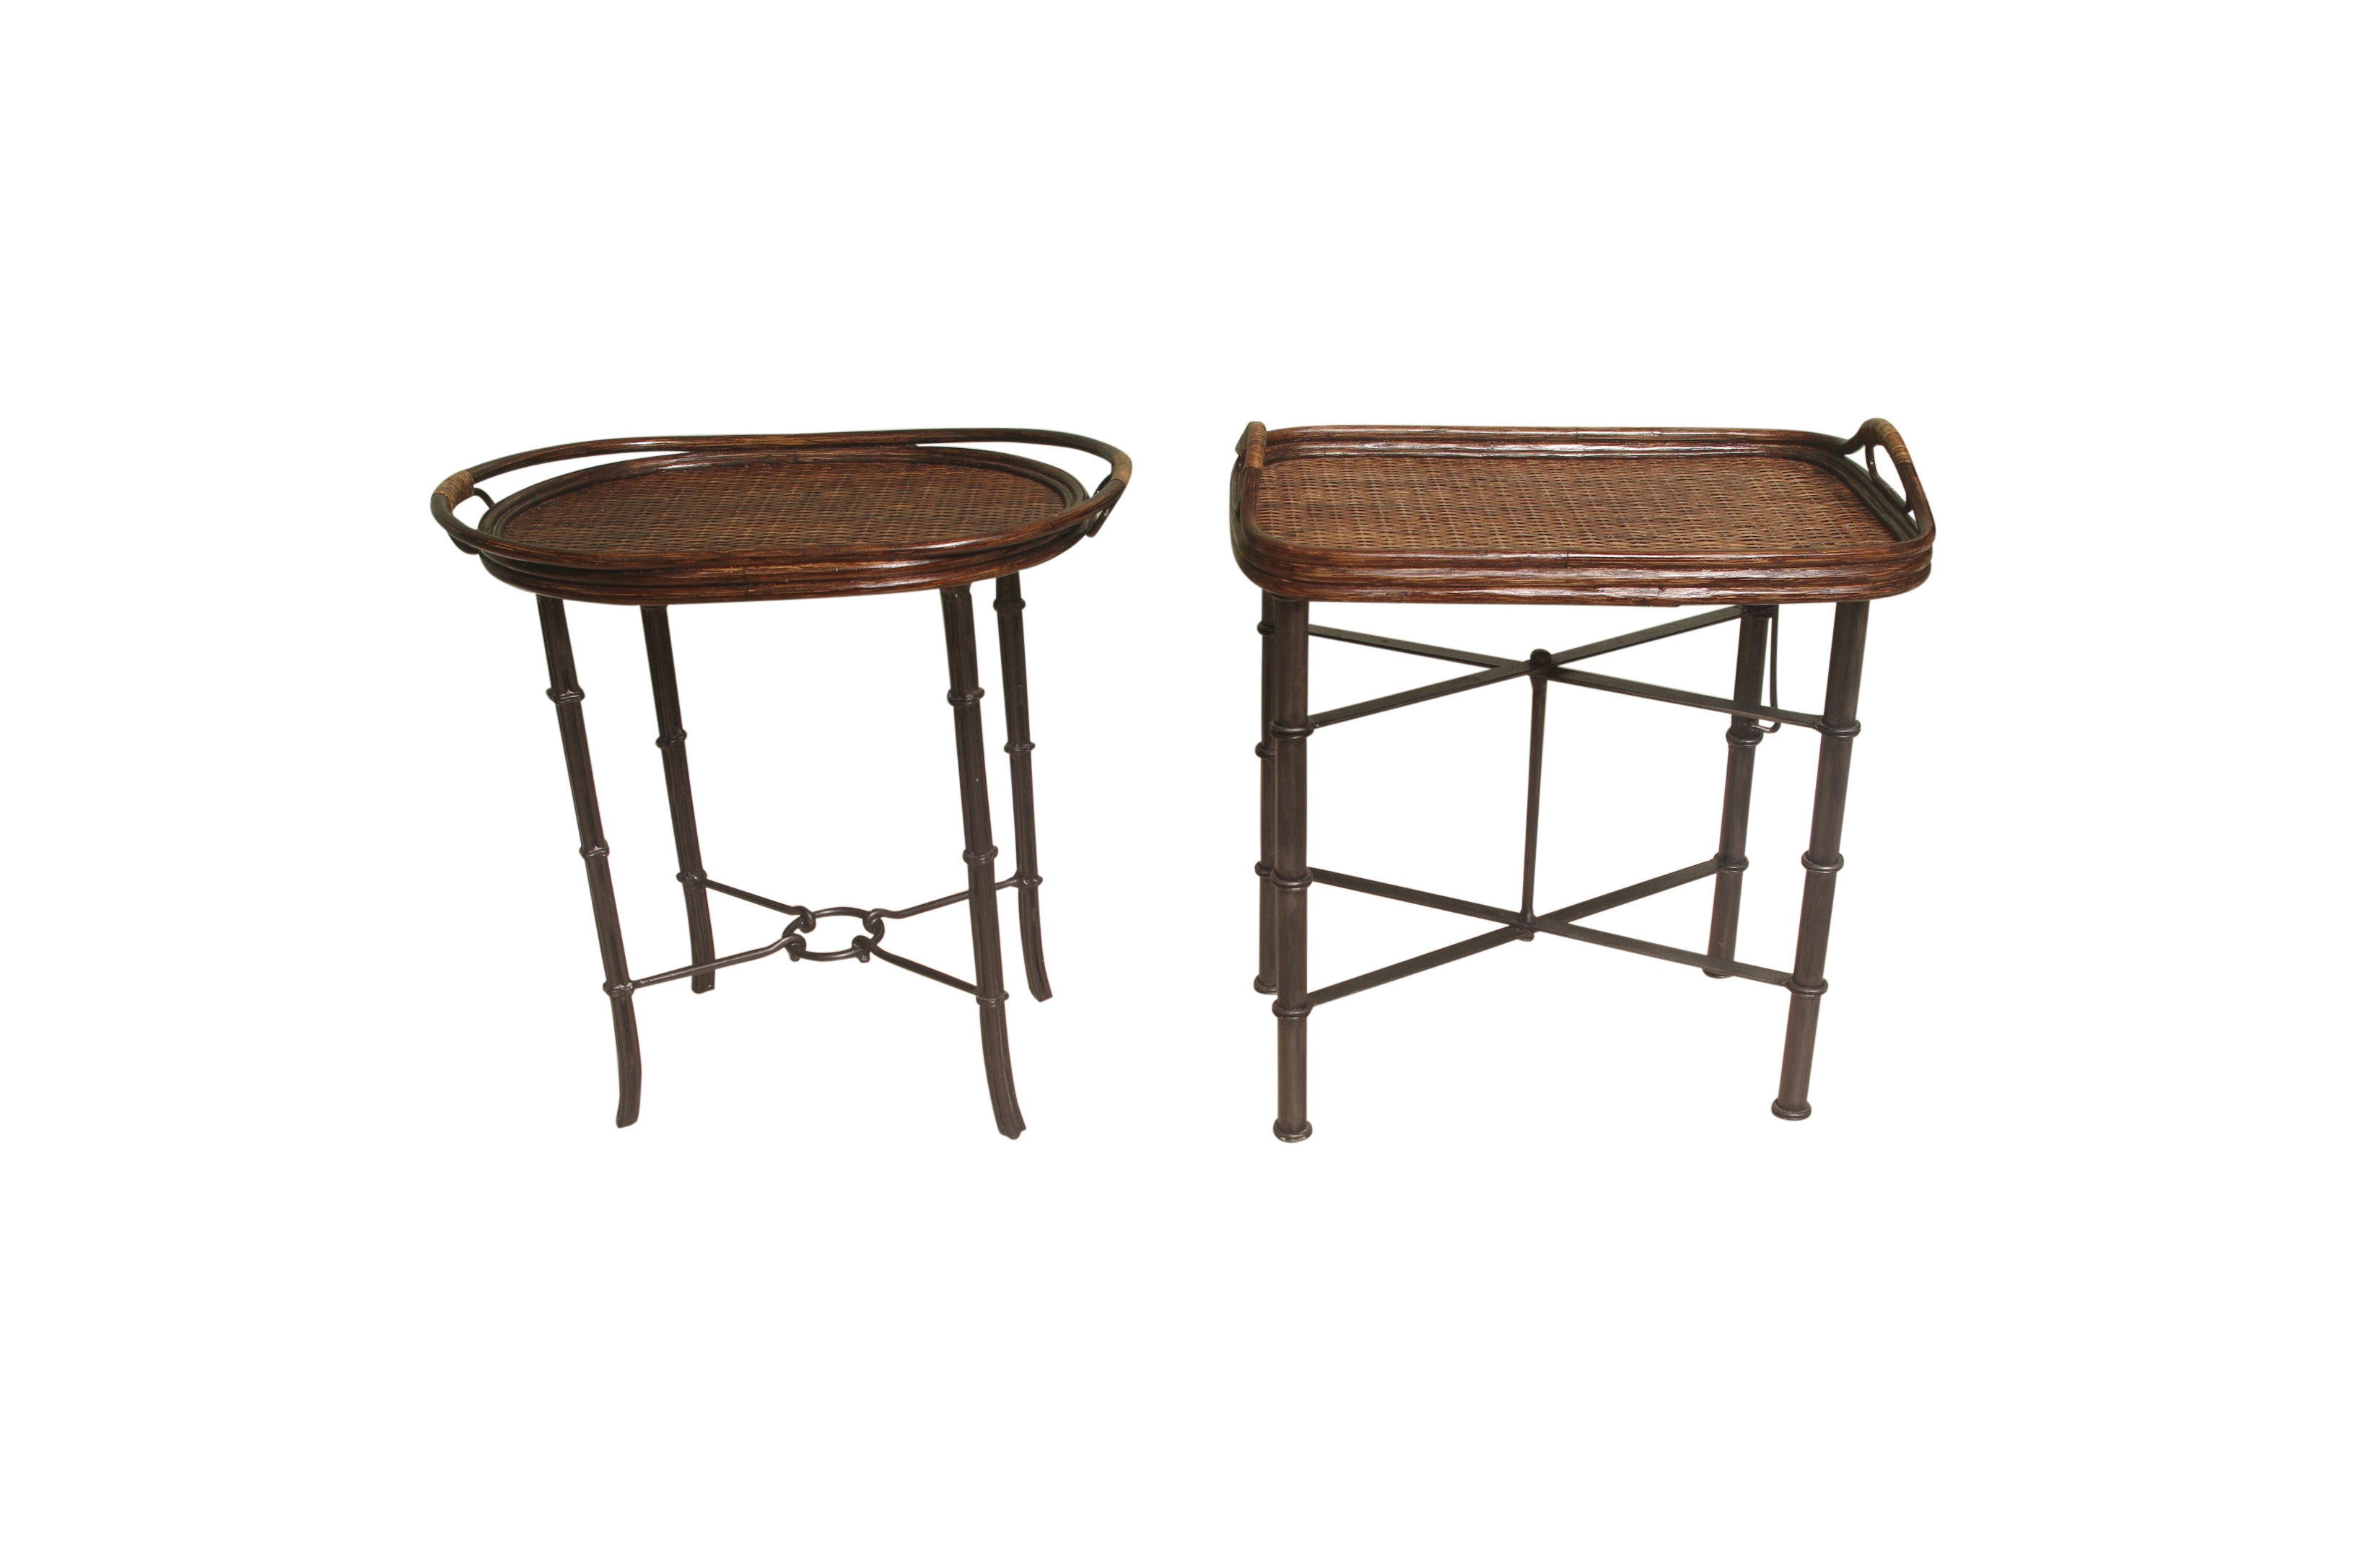 Pair of Maitland Smith Wicker and Rattan Style Tray Tables